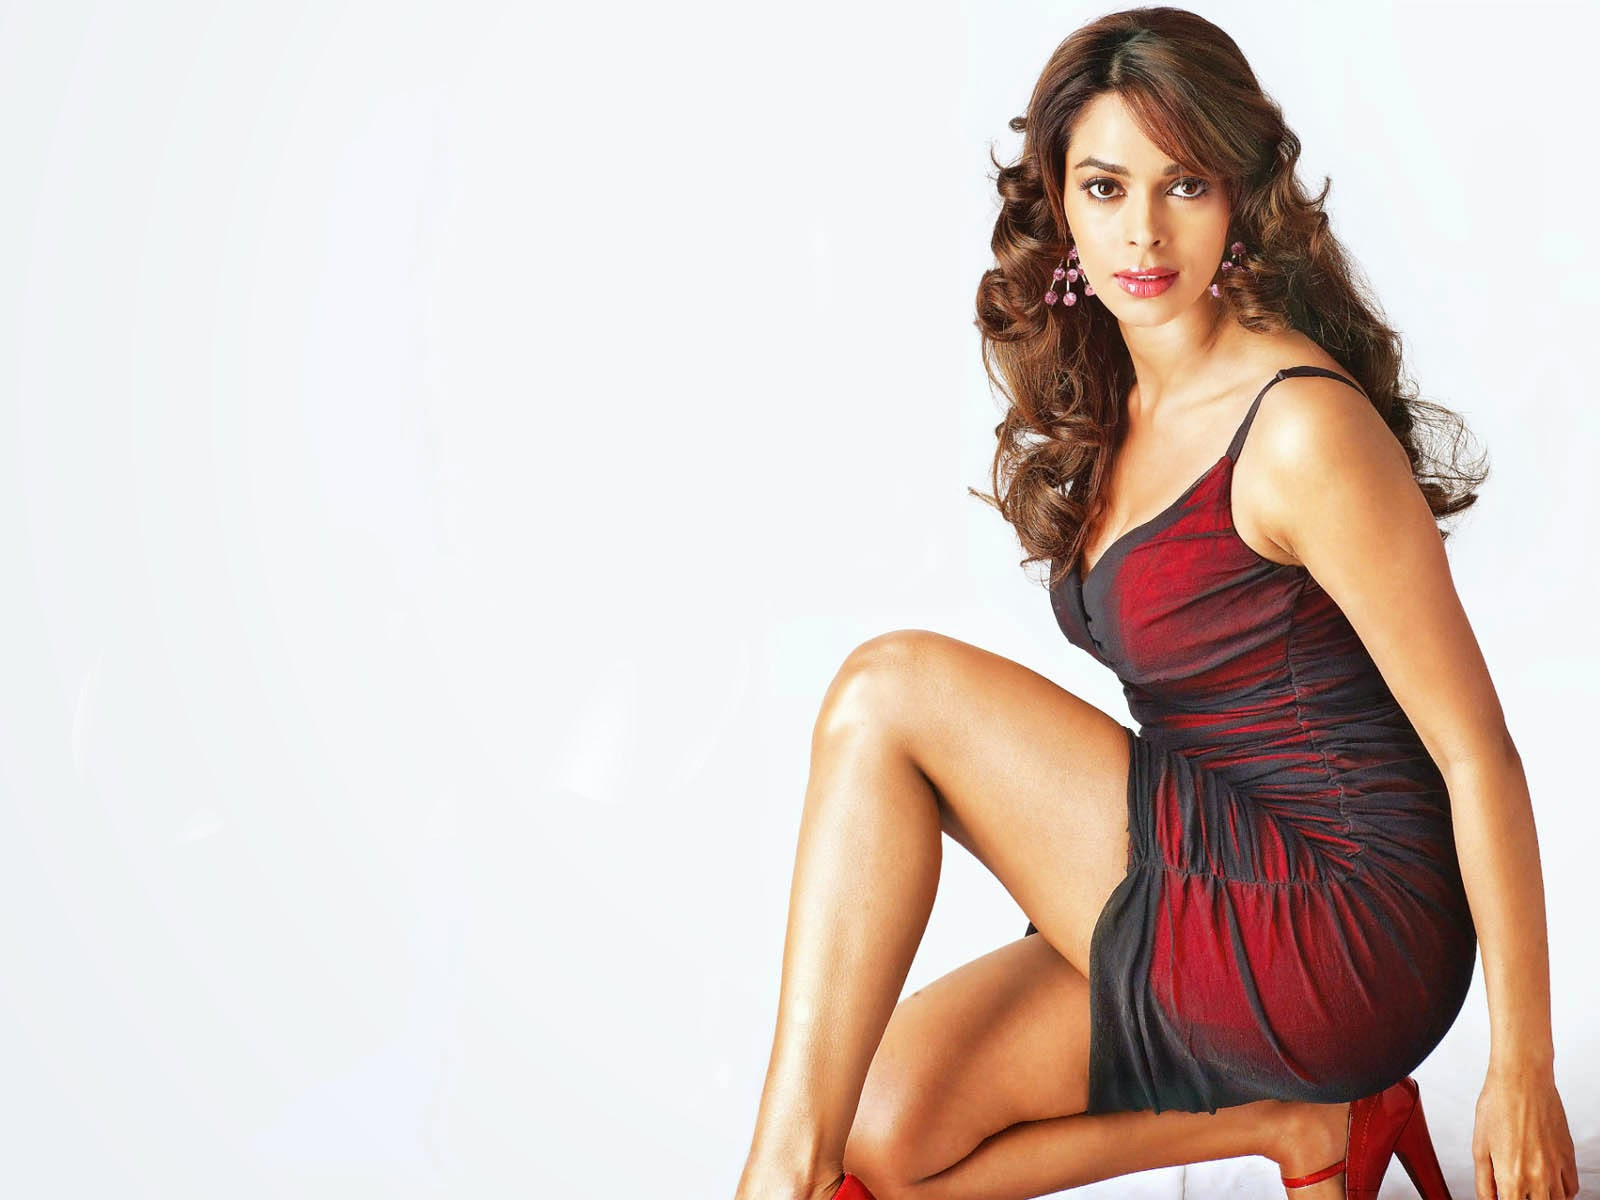 Mallika sherawat 1080P HD amazing wallpapers